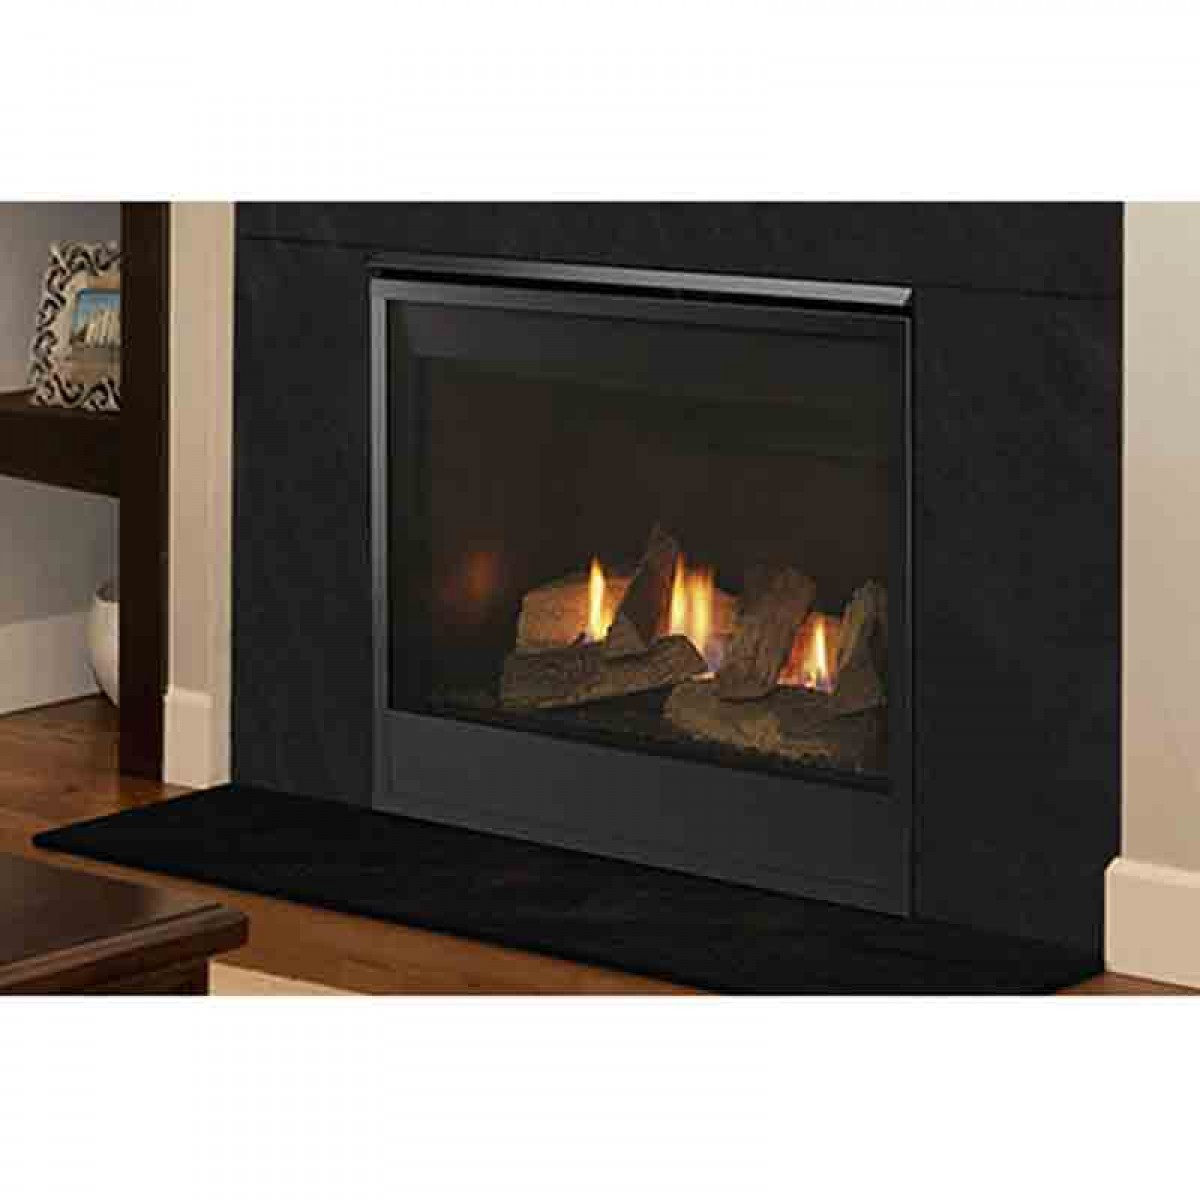 "Majestic Mercury 32"" Direct Vent Gas Fireplace"